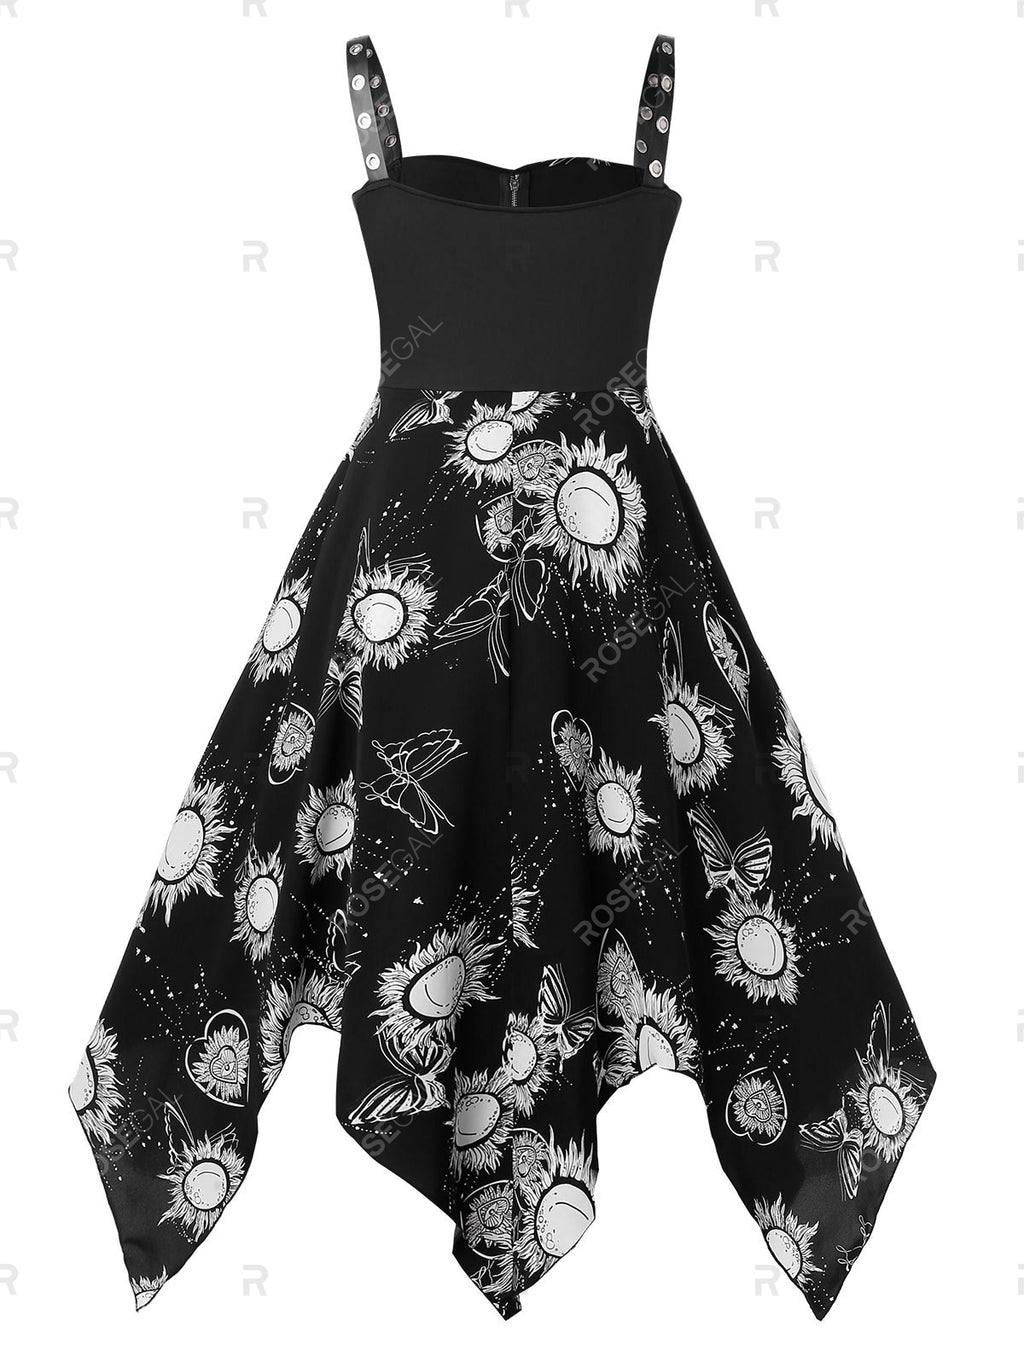 Plus Size Halloween Grommets Sun Print Gothic Dress